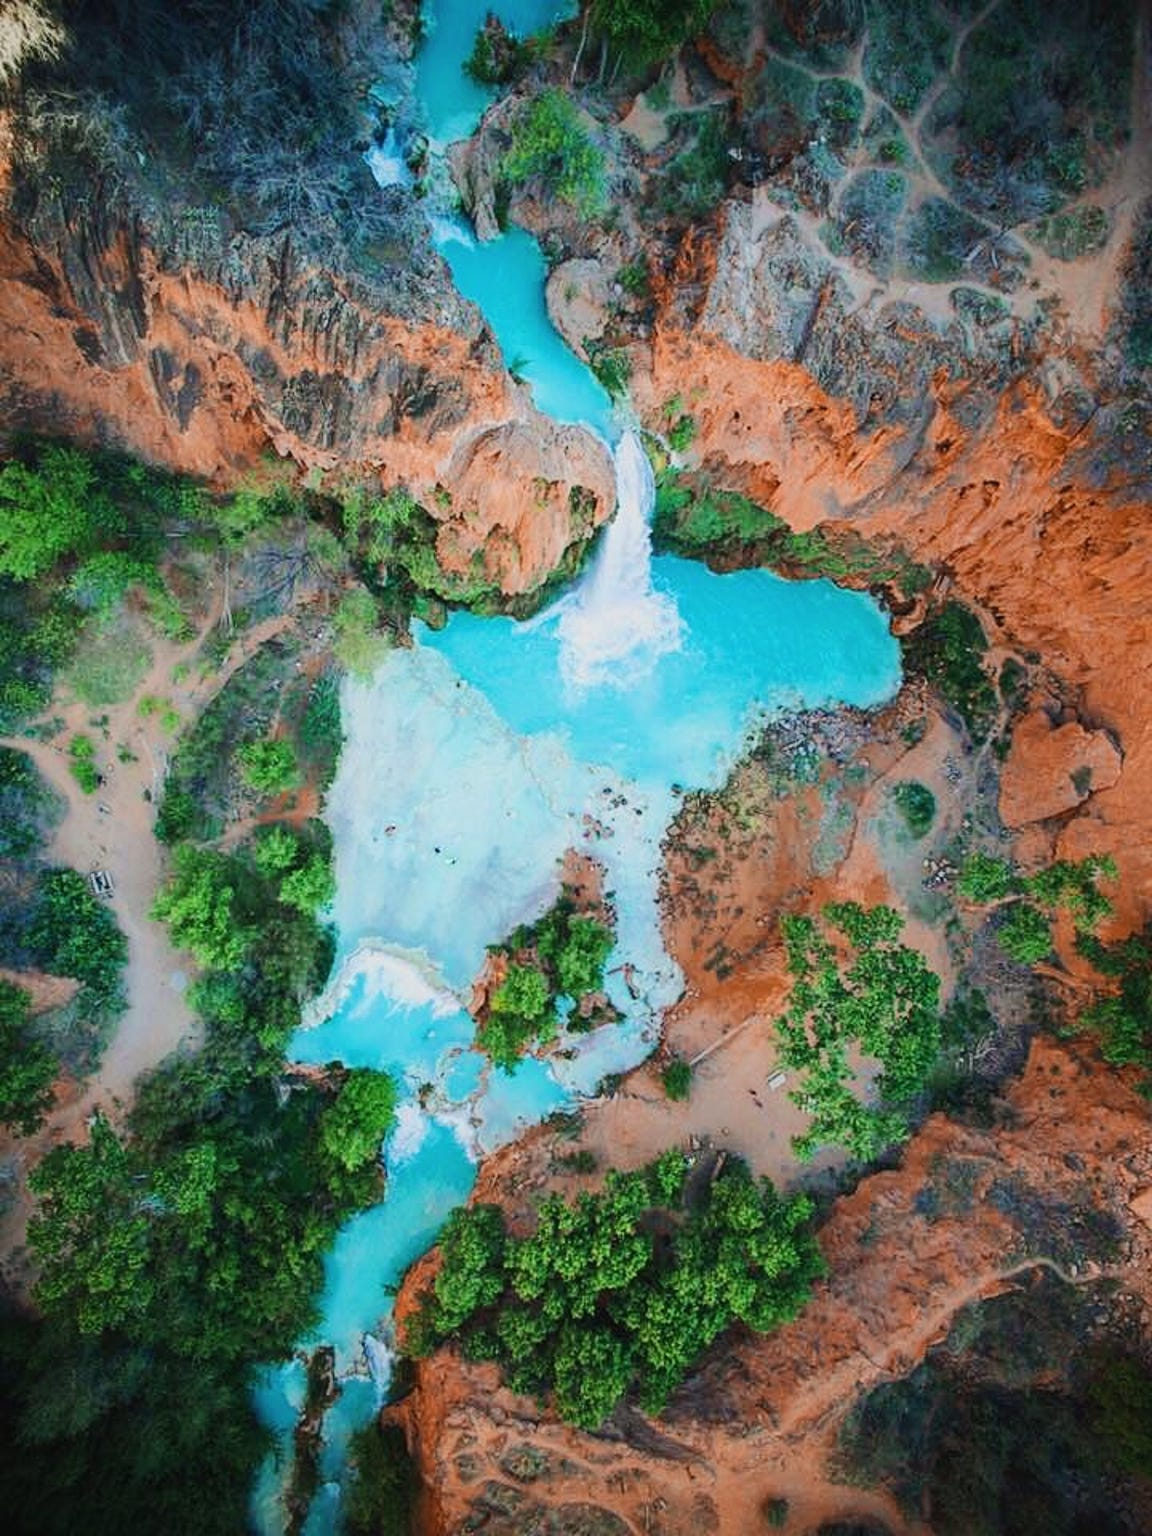 Havasu Falls looks like a blue-green paradise in this